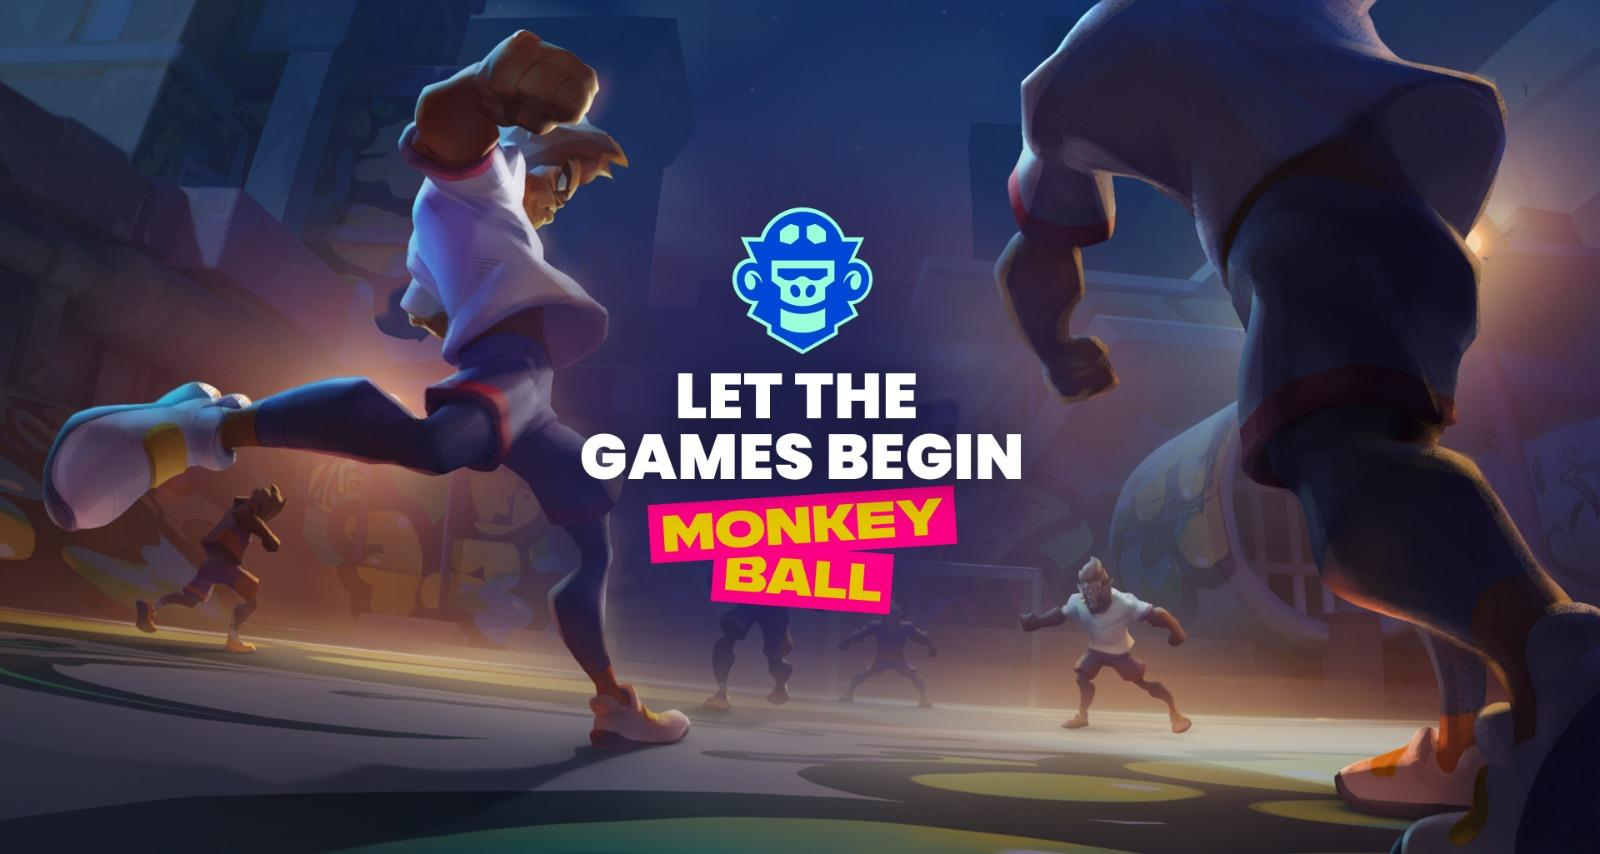 Solana Based Play-to-Earn Startup MonkeyBall raises $3M From Crypto's Top VCs and Founders